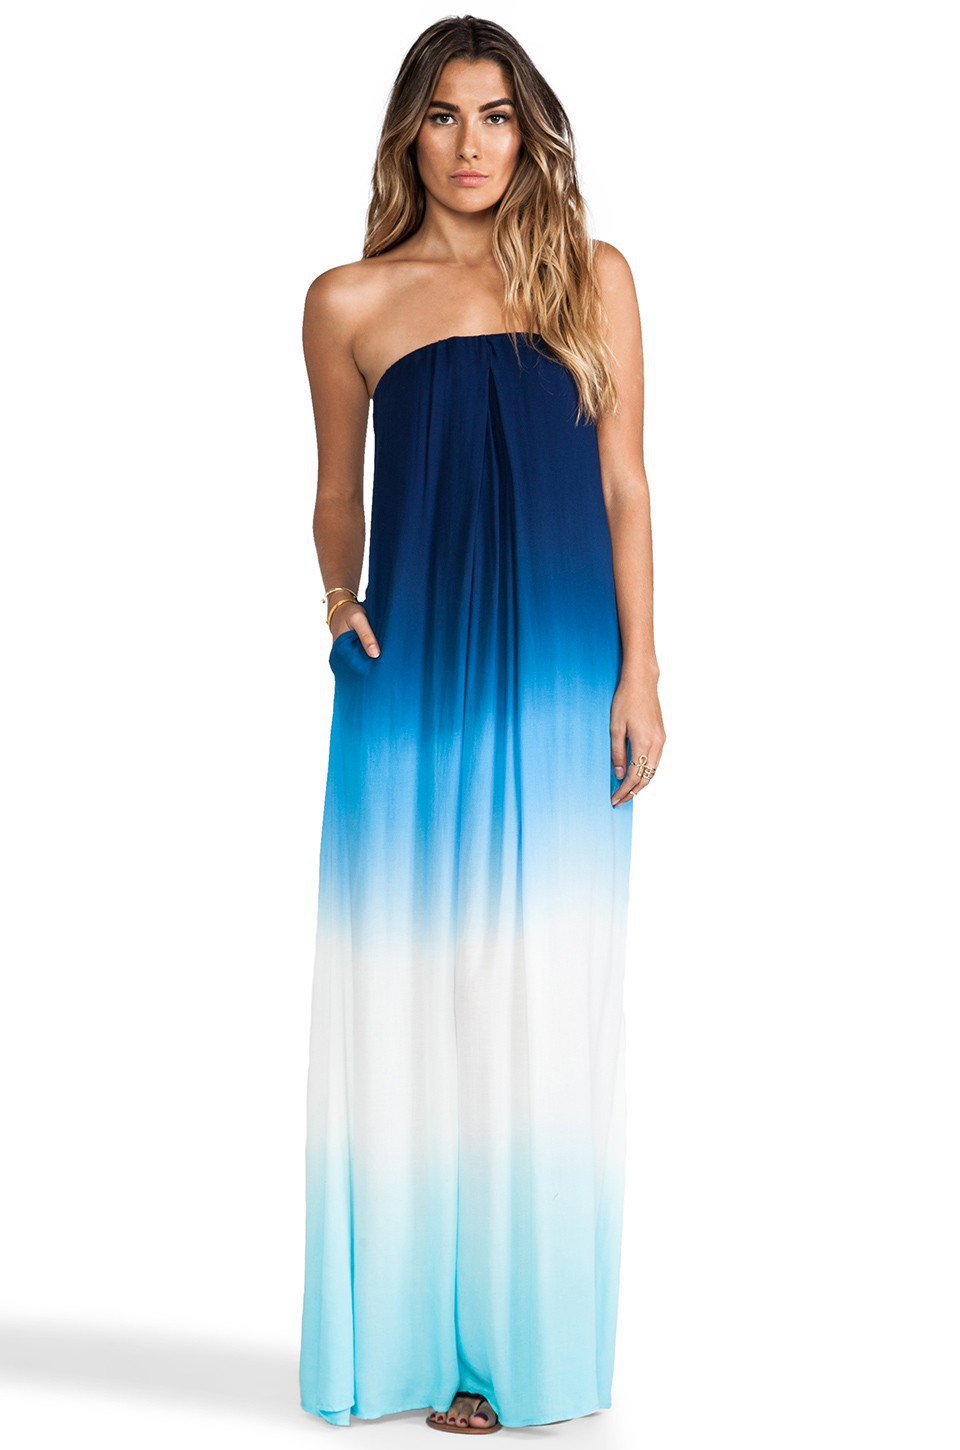 Maxi Dresses For The Beach